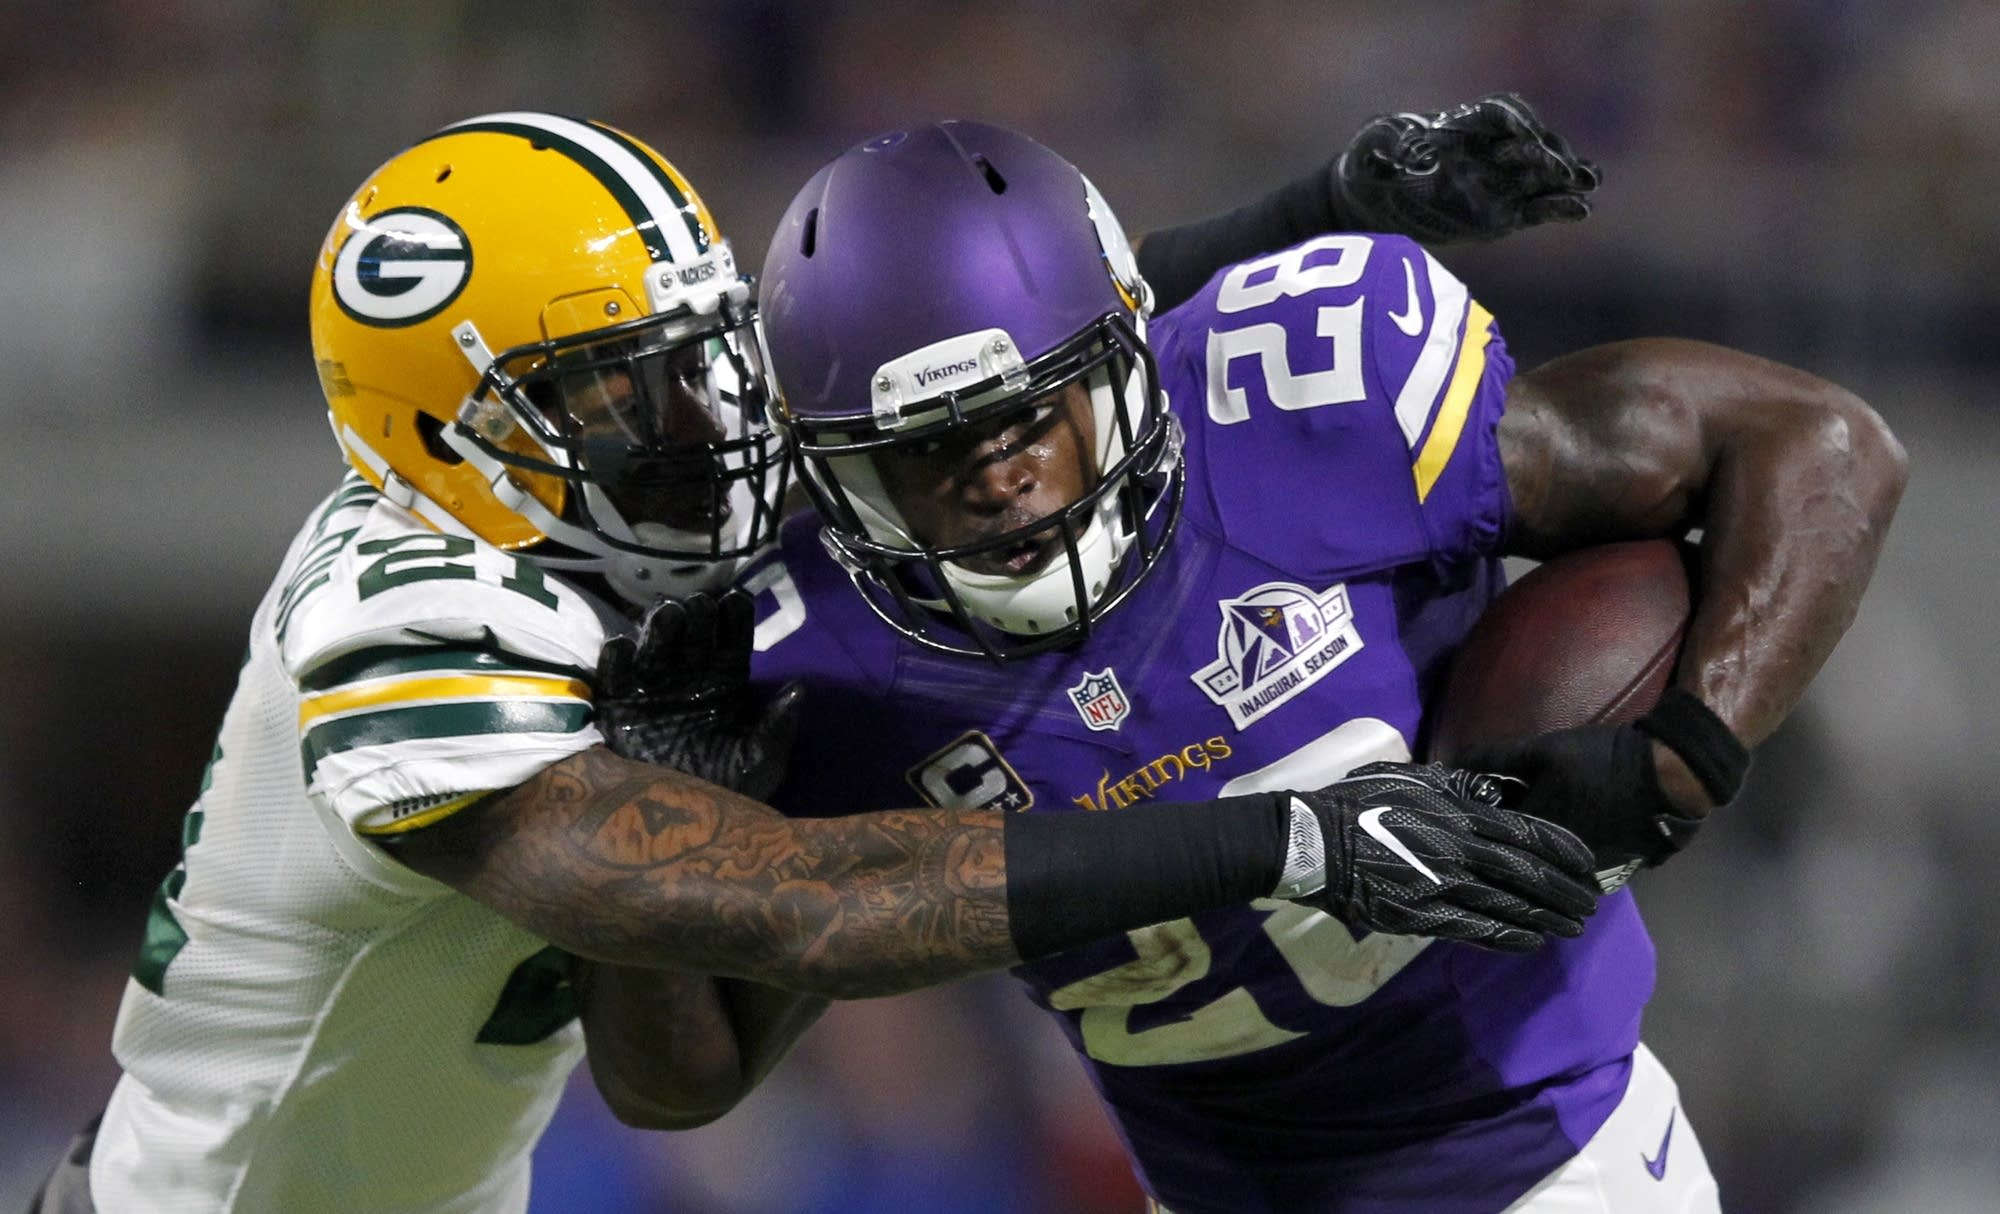 Adrian Peterson, Ha Ha Clinton-Dix